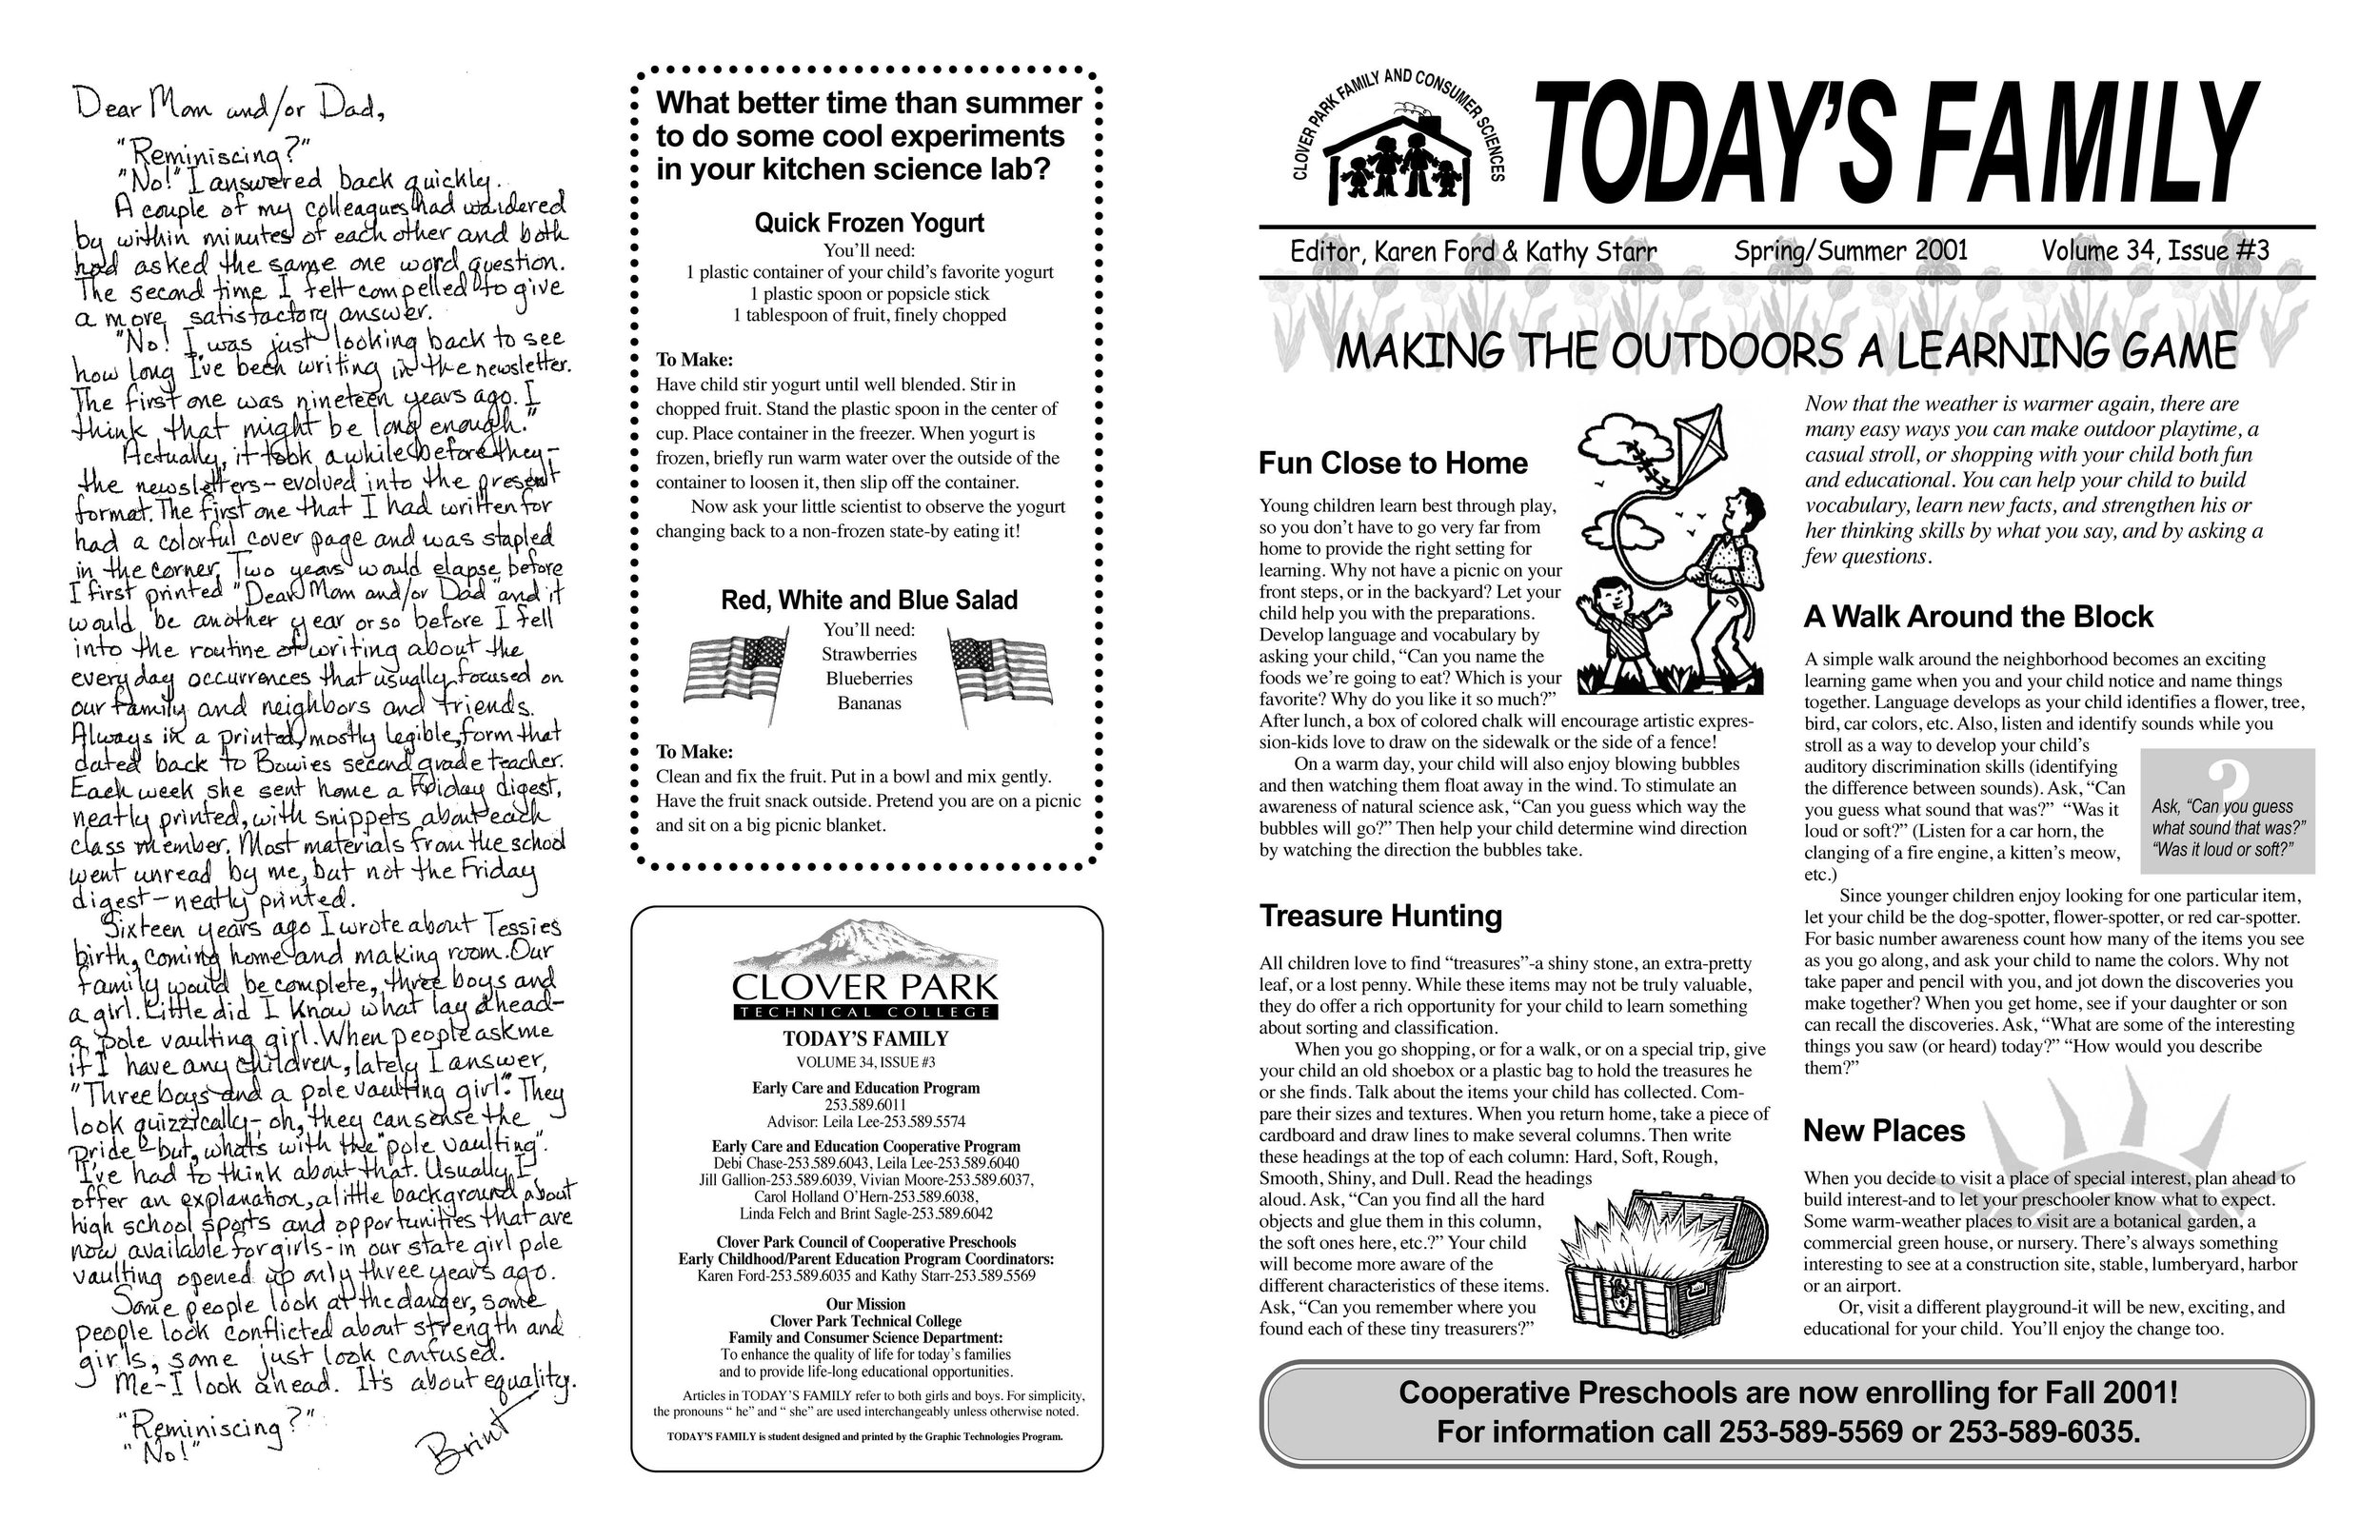 Today's Family Spring/Summer Newsletter  Outside spread, Pages 4 and 1